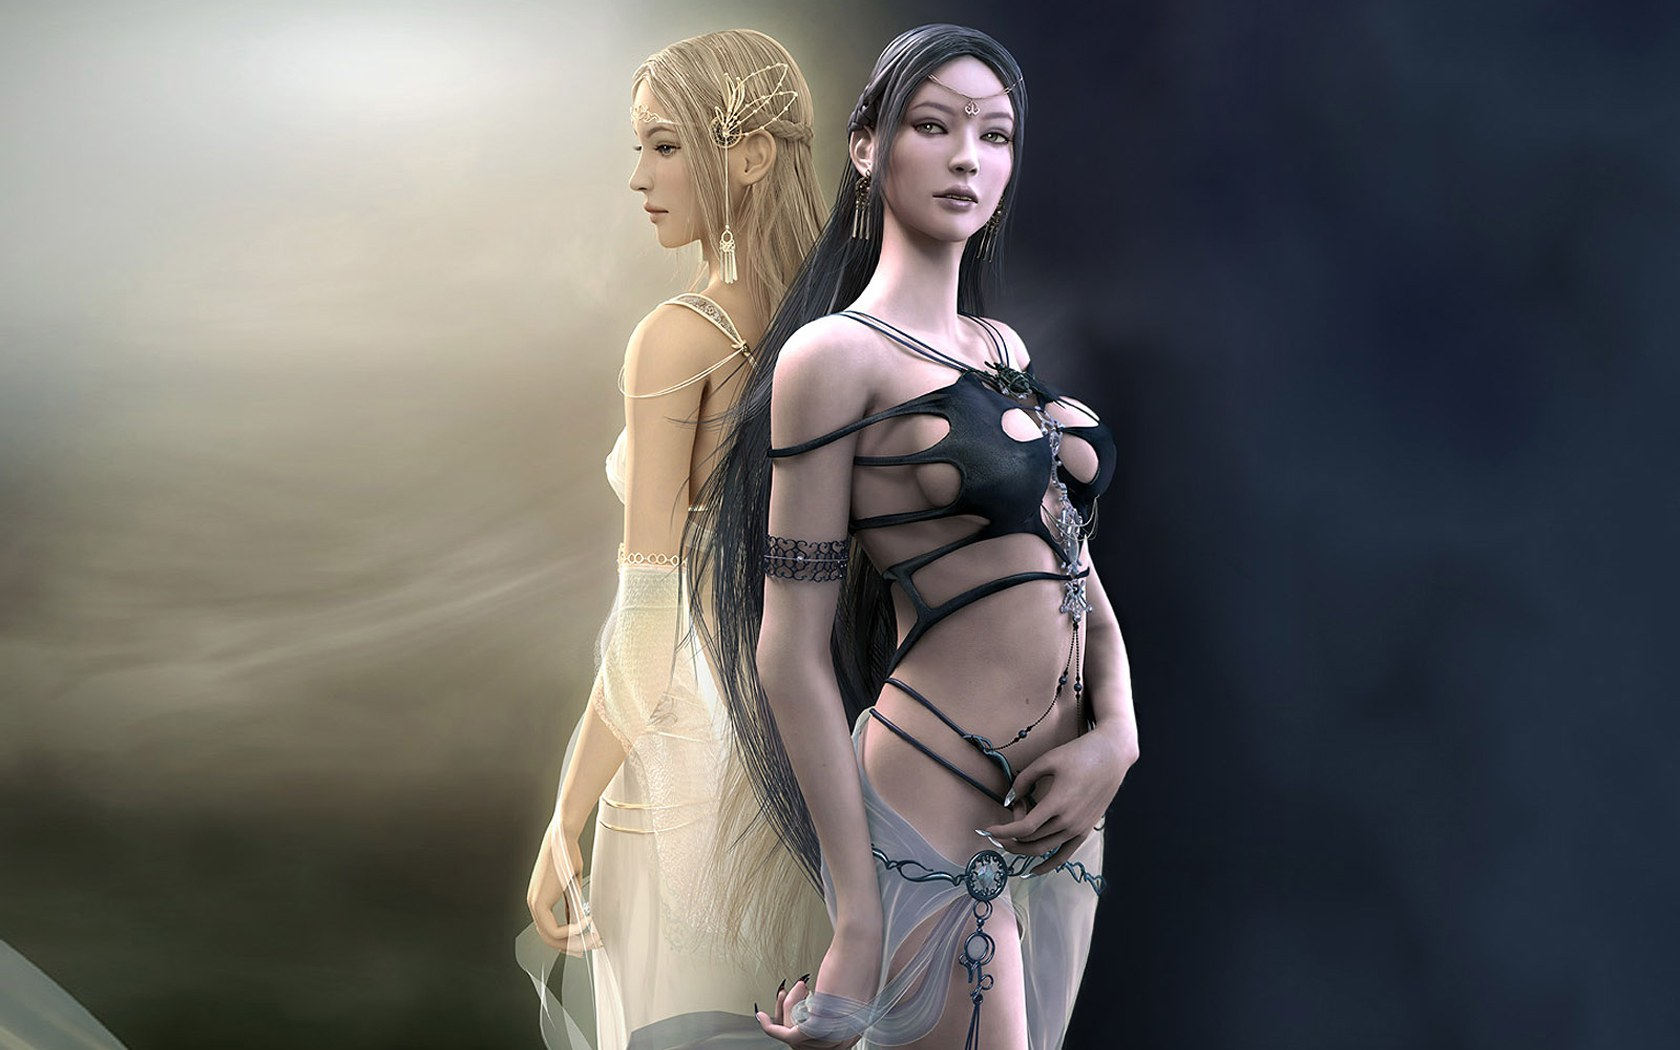 game_fantasy_girls_in_games_32445_11.jpg